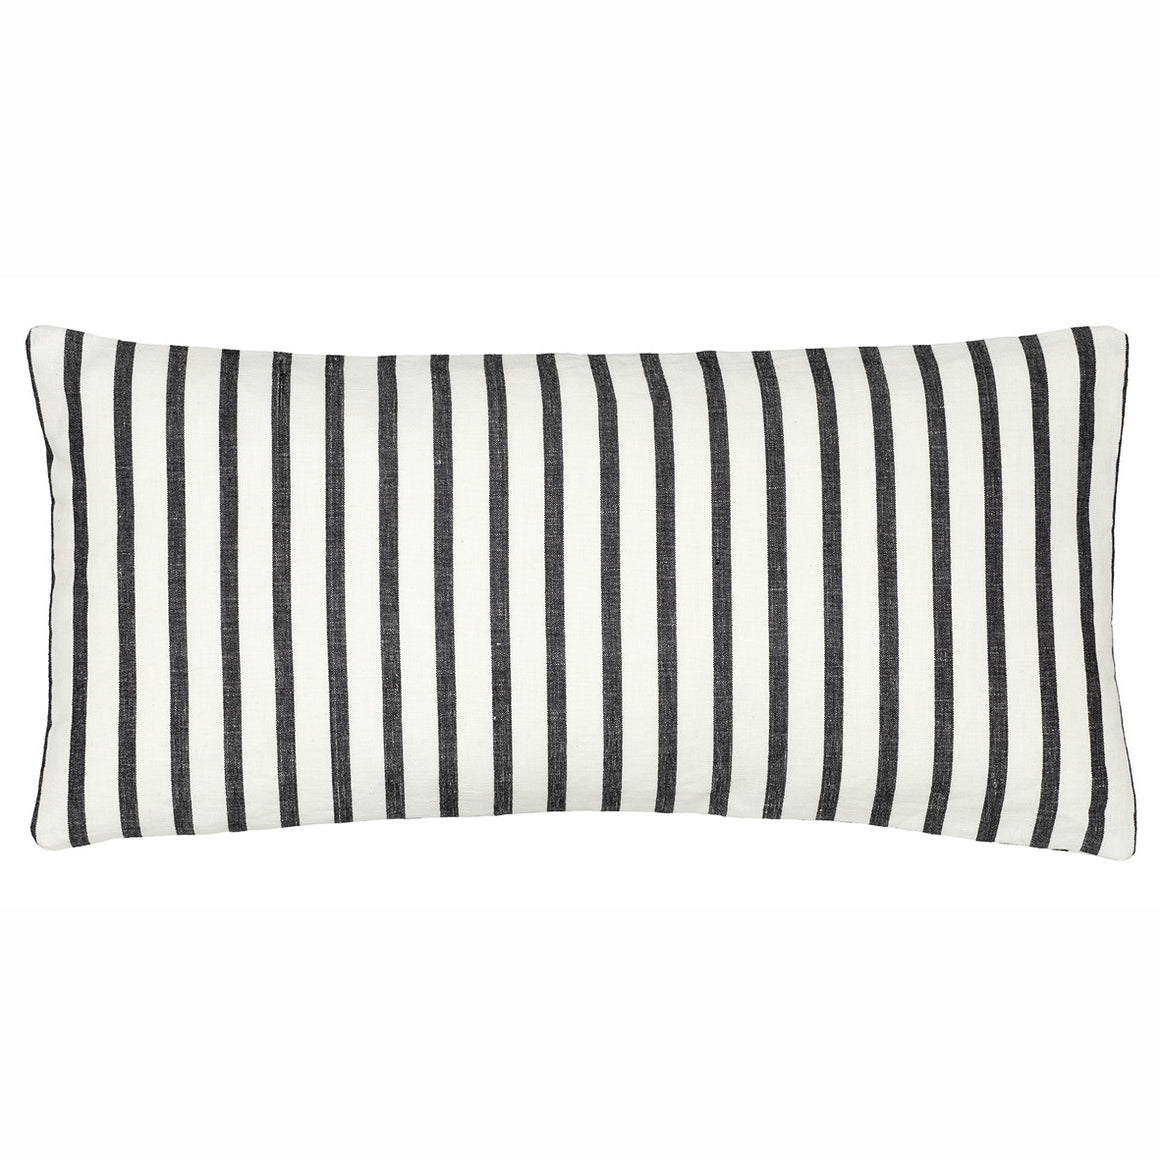 Autumn Ticking Stripe Rectangle Cushion - Black 30x60cm